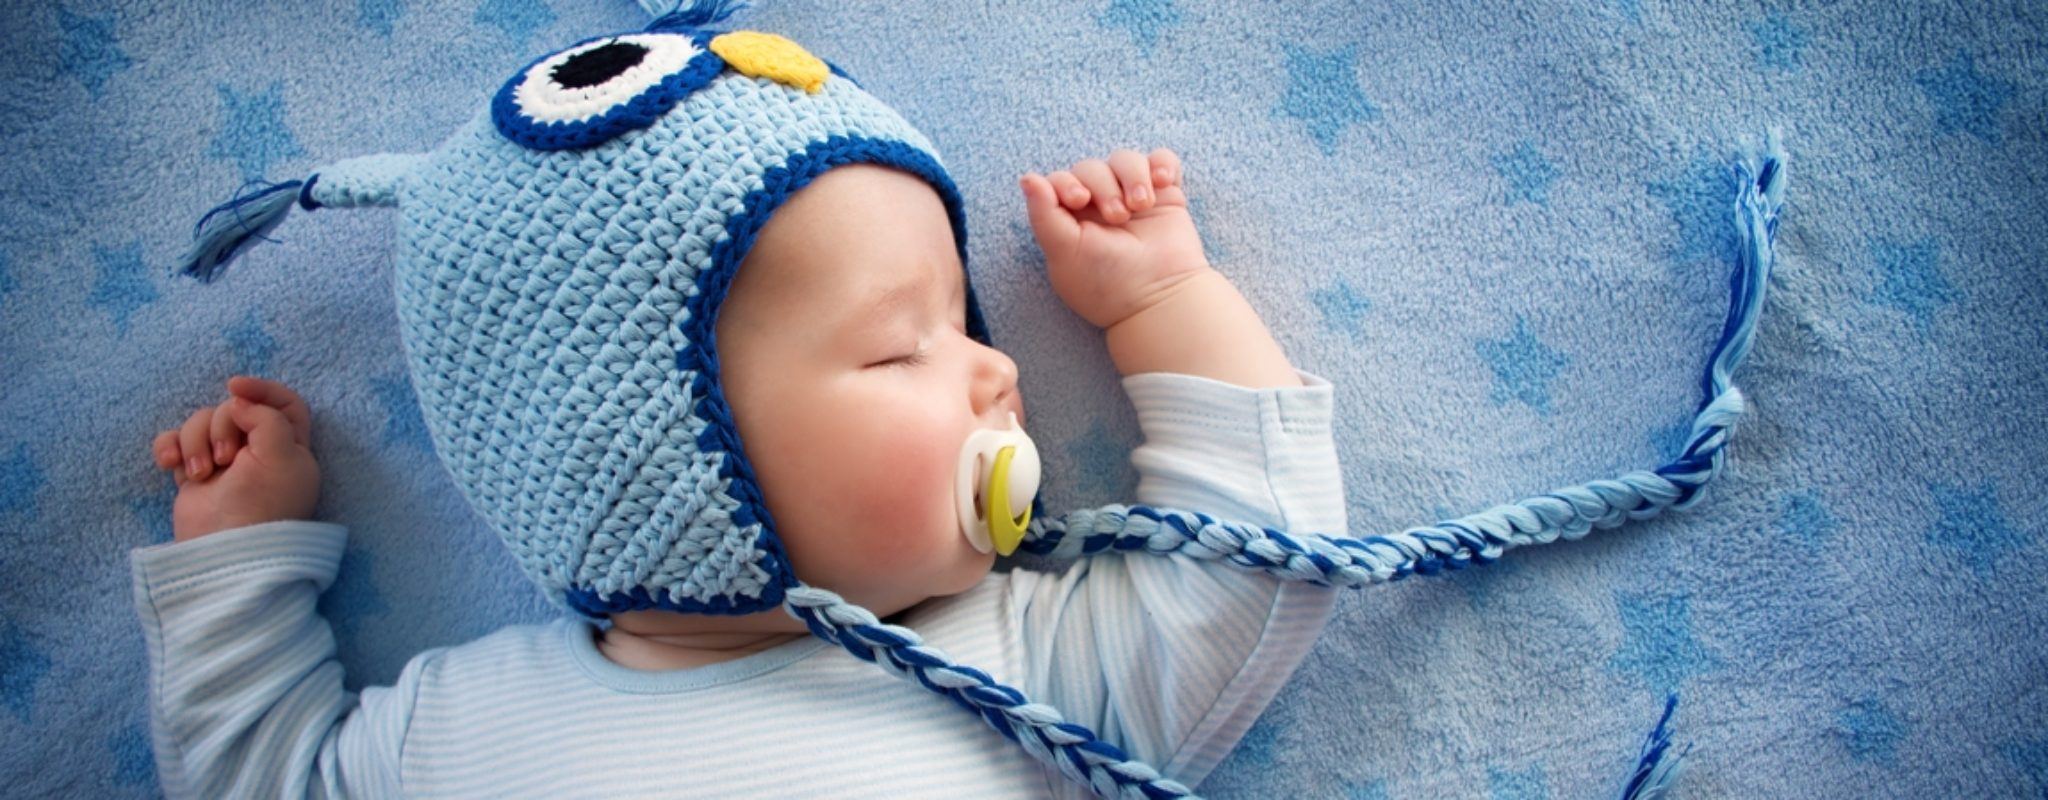 Baby sleeping shows importance of sleep in children